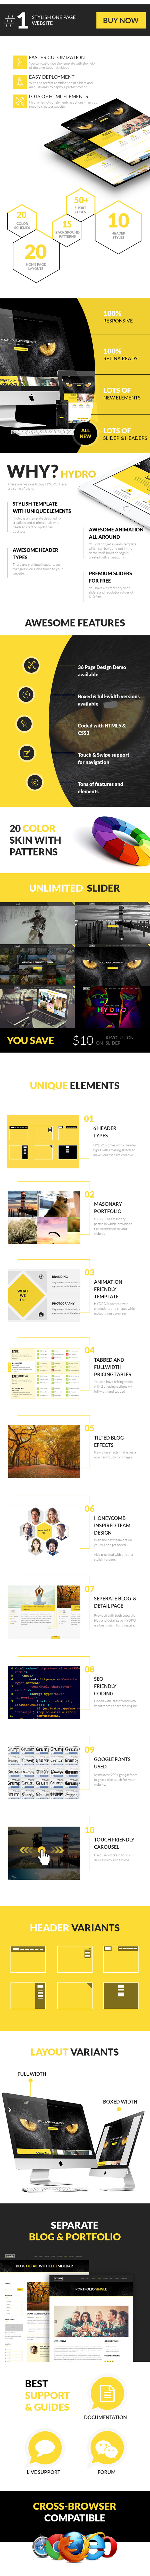 HYDRO - Multipurpose one page HTML5 Template - 1